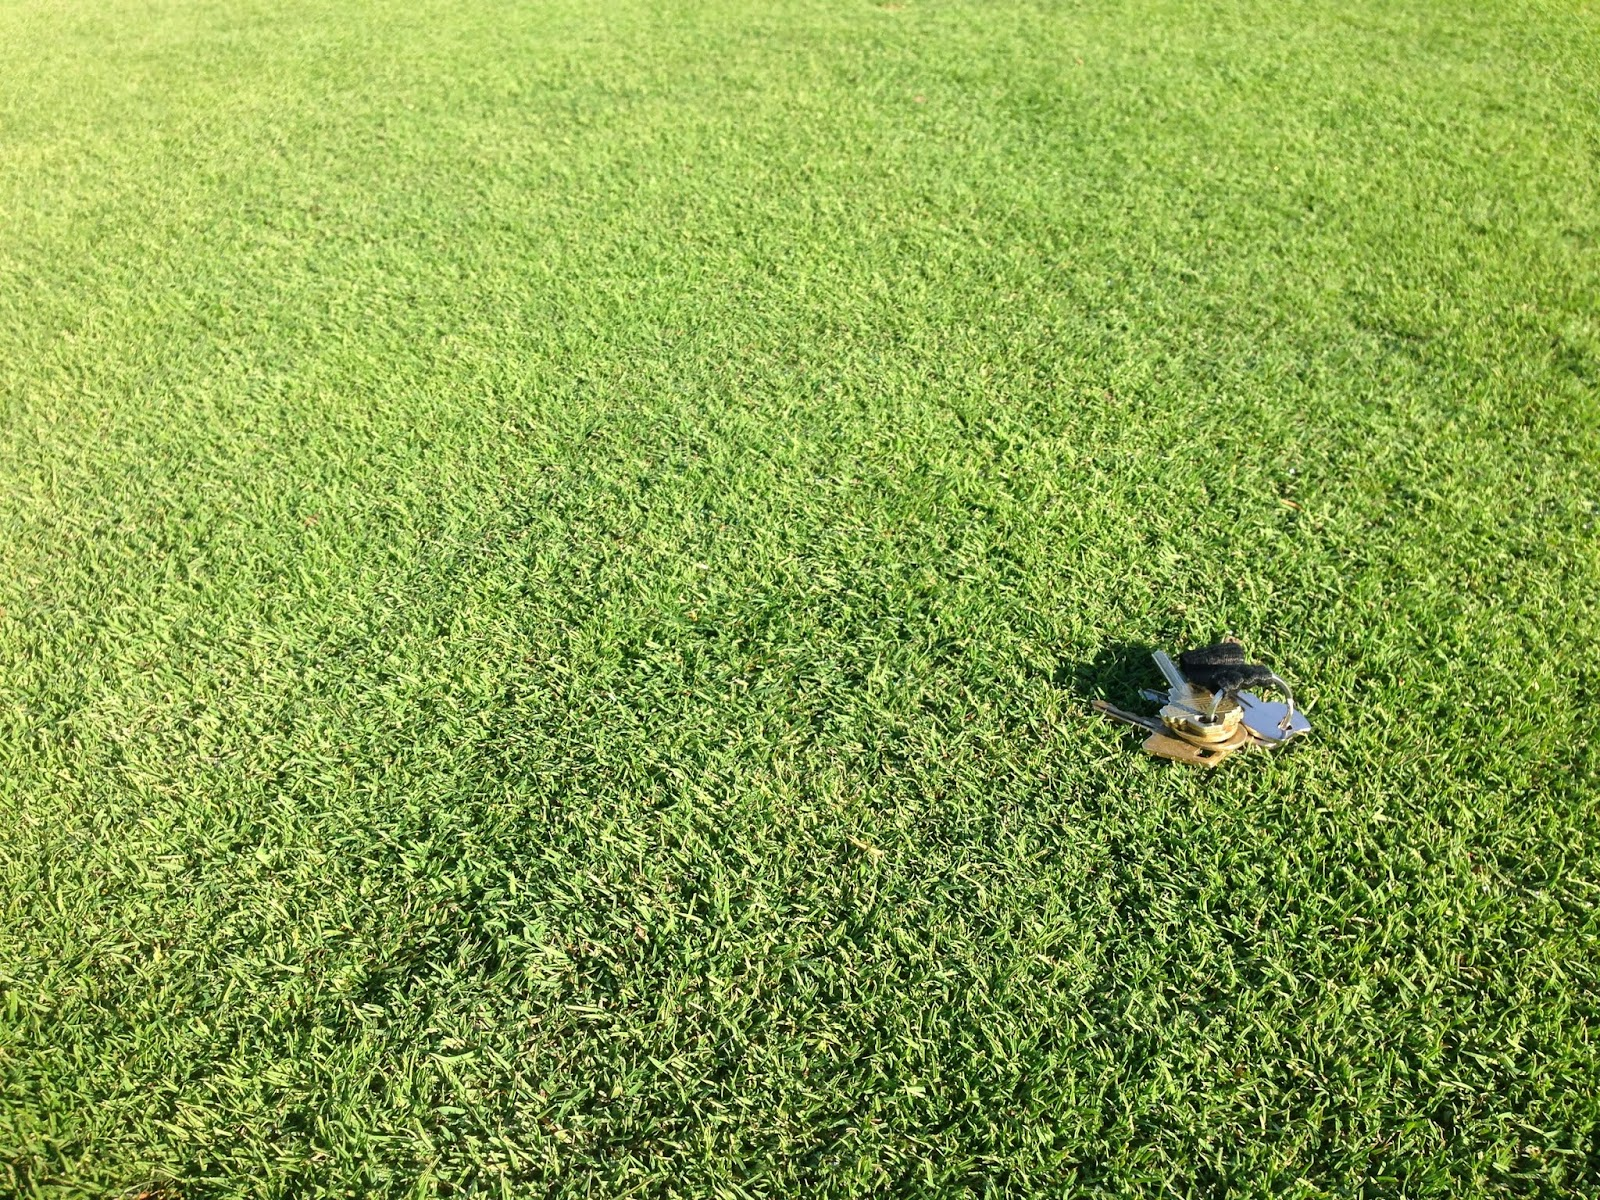 transitioning the poa out of fairways a progress report